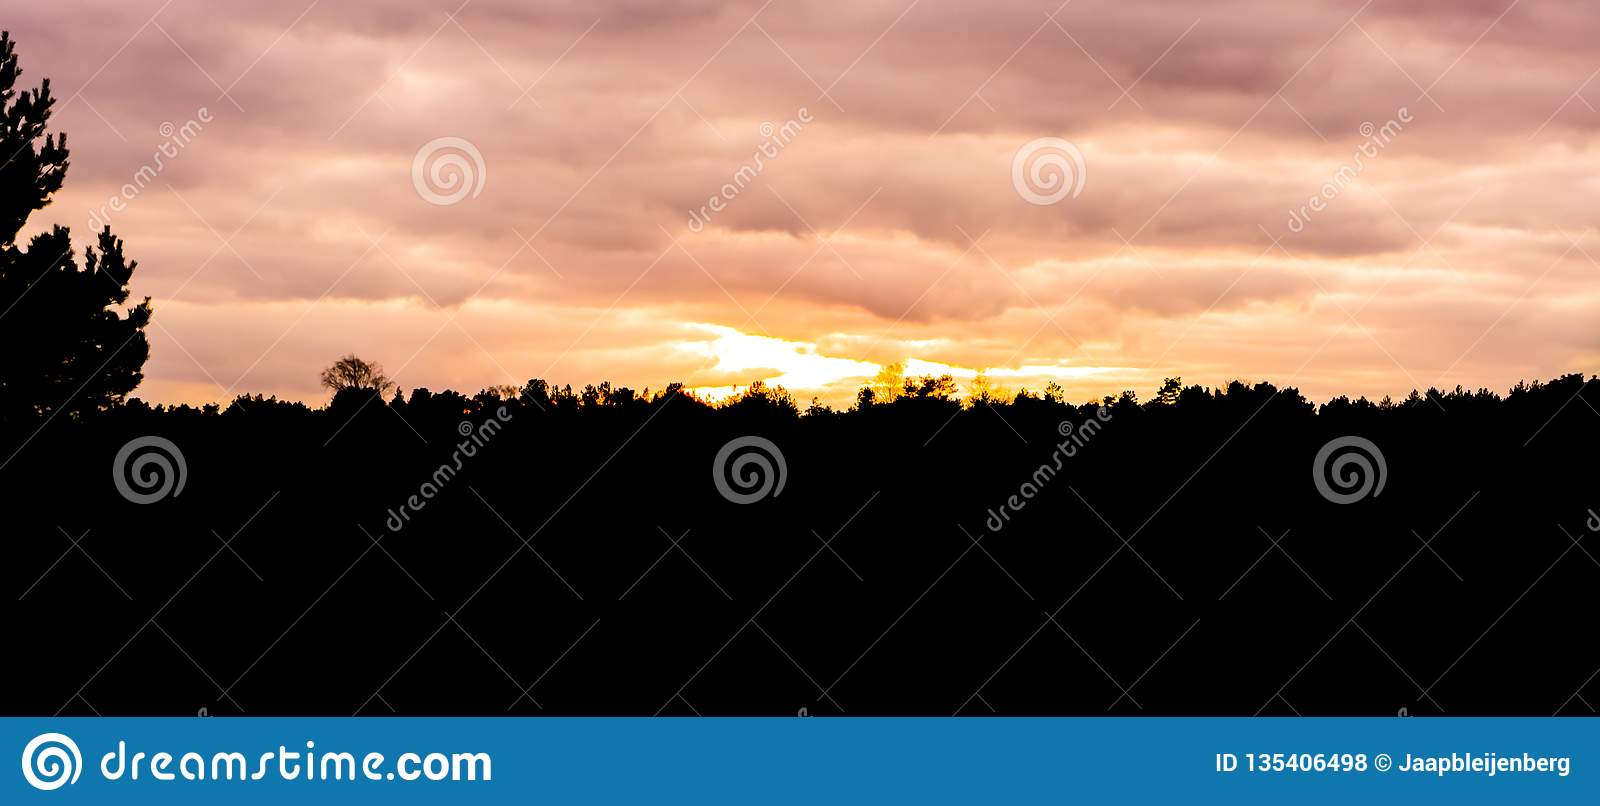 Silhouette of a moorland landscape in the forest at sunset, sundown giving orange and pink colors in the sky and clouds